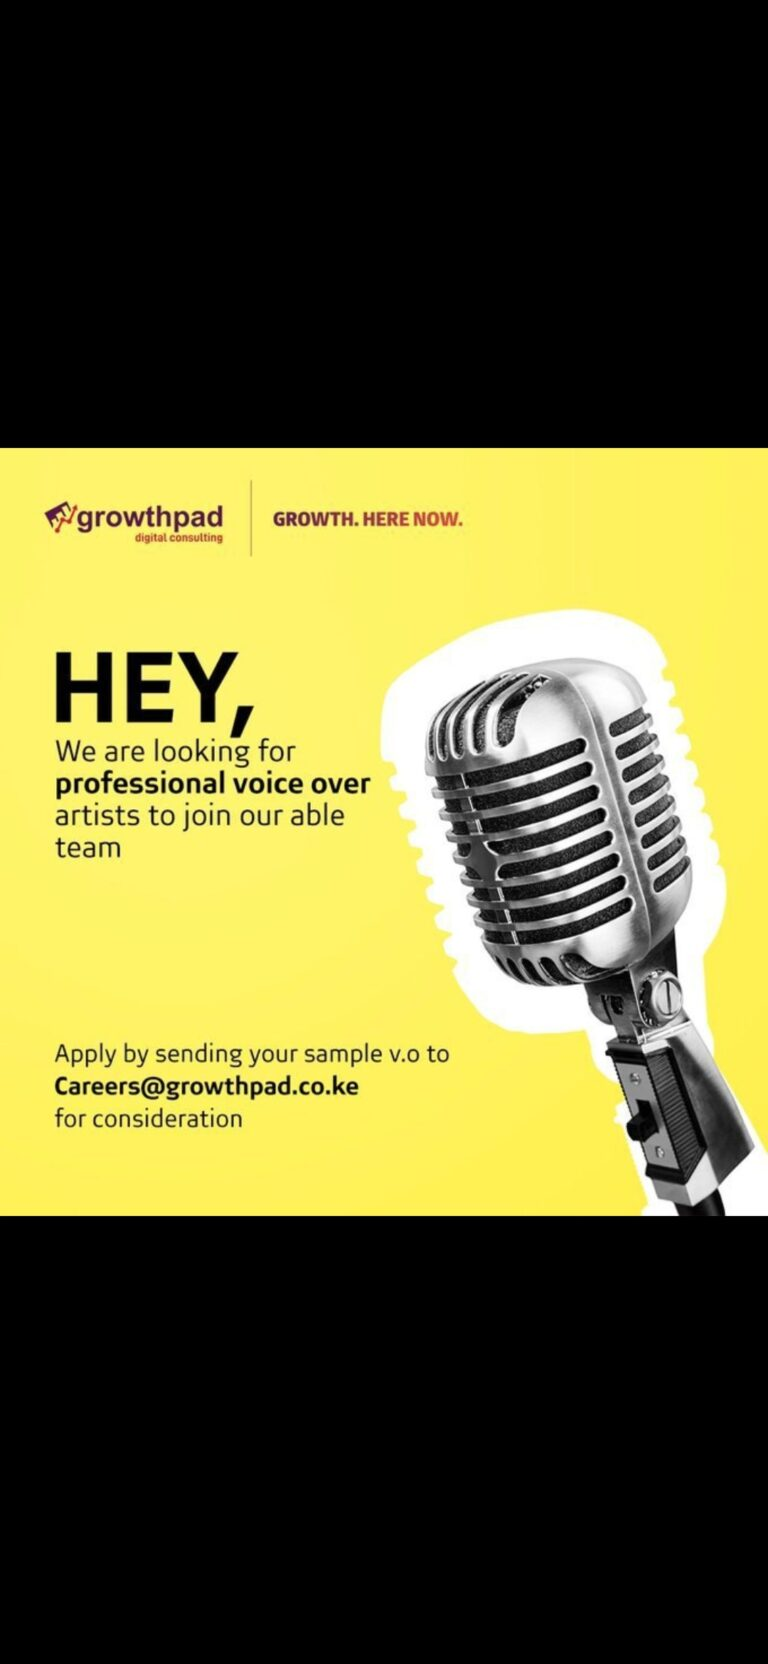 PROFESSIONAL VOICE OVER ARTISTS